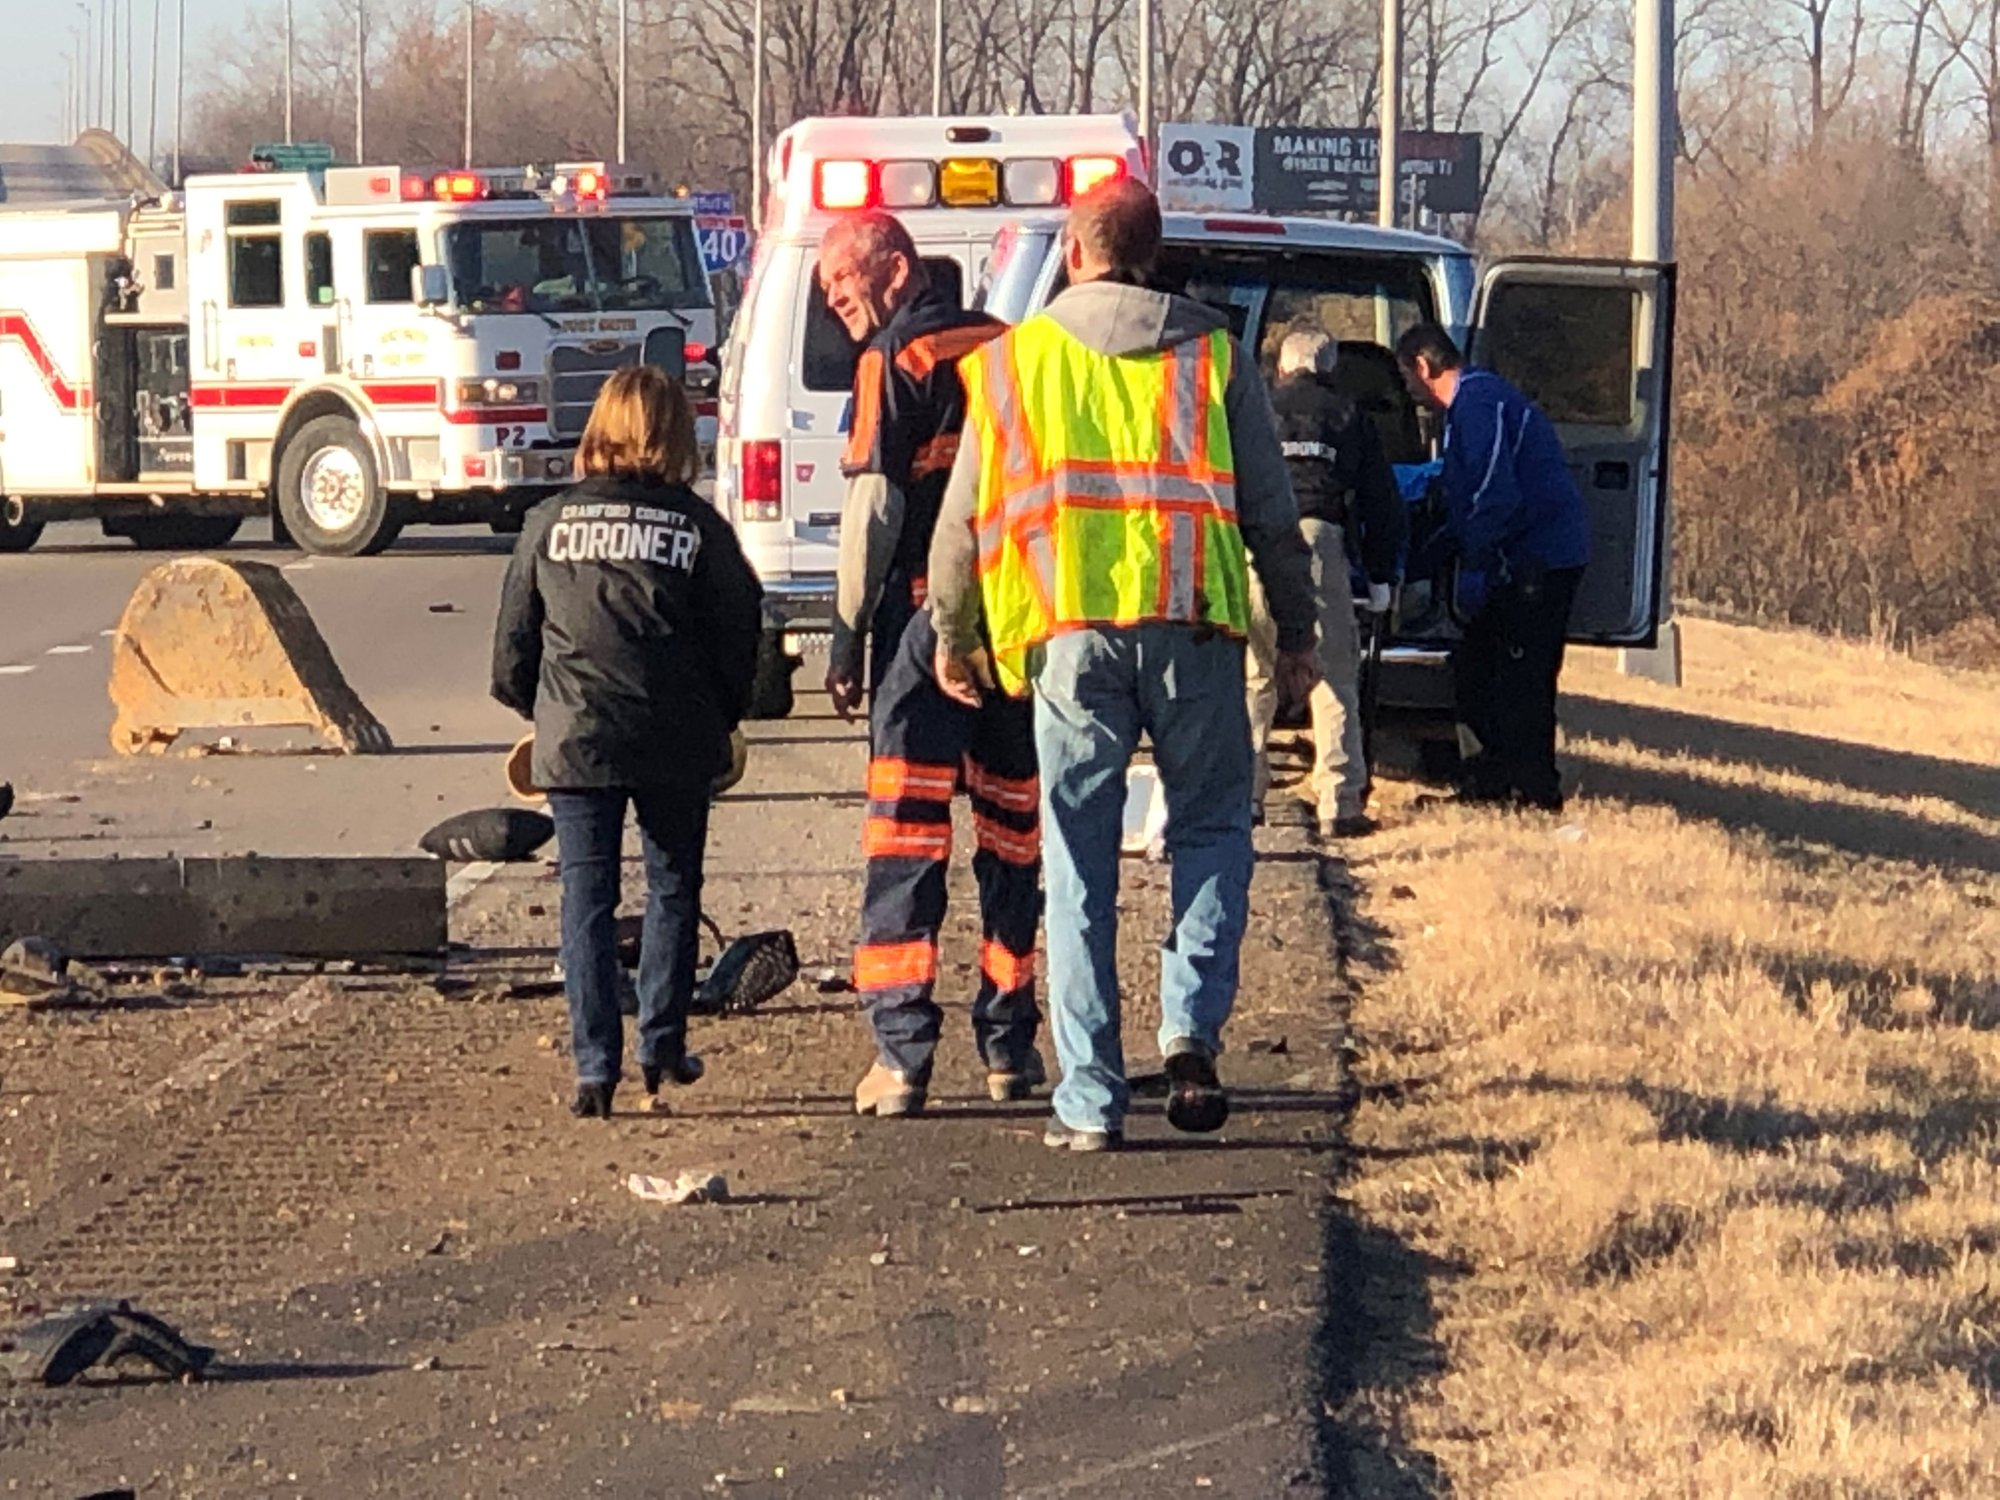 The Crawford County coroner is on the scene of the Interstate 540 accident.